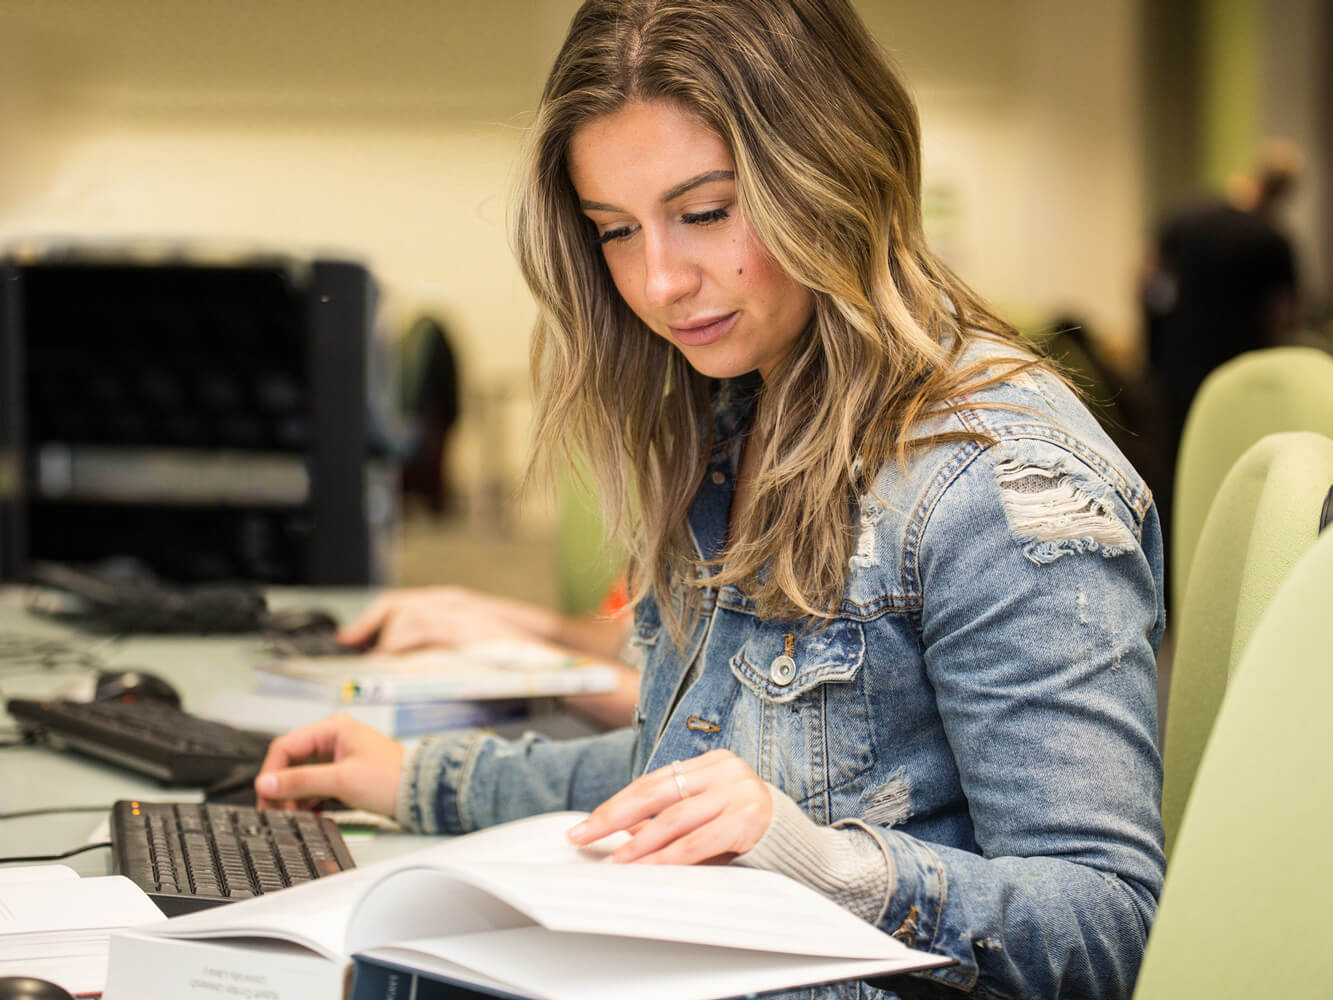 It is crucial to answer the question whether a suggestion course can be helpful in preparing for CELPIP. It is well known that the English language exam